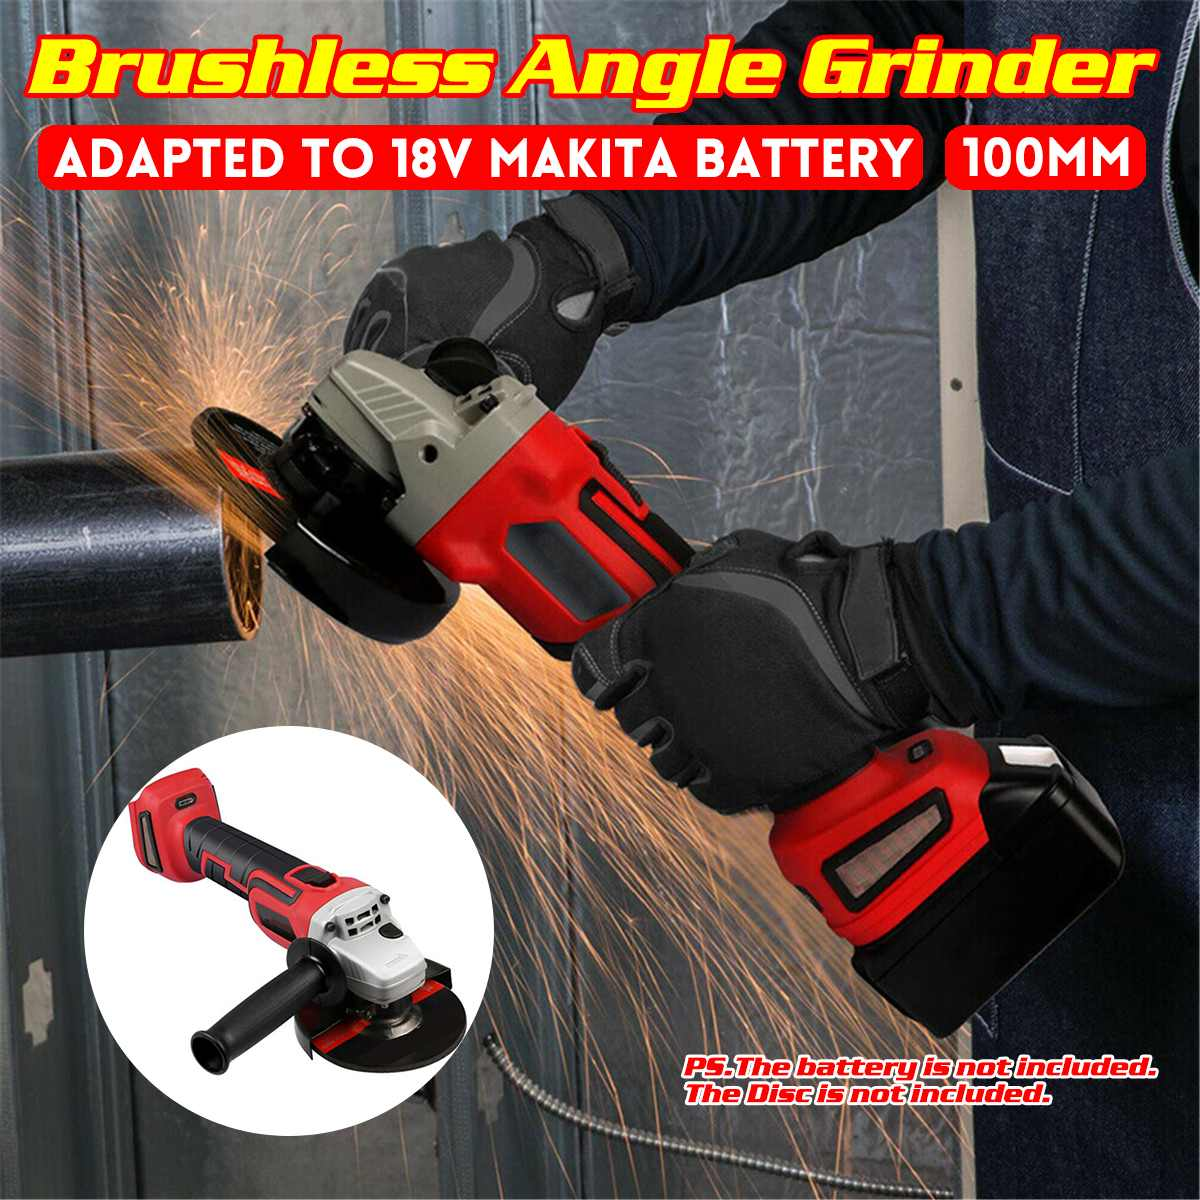 Cordless Electric Angle Grinder 100/125mm 0-8500 RPM Brushless Grinding Machine Metal Cutting Power Tools For 18V Makita Battery